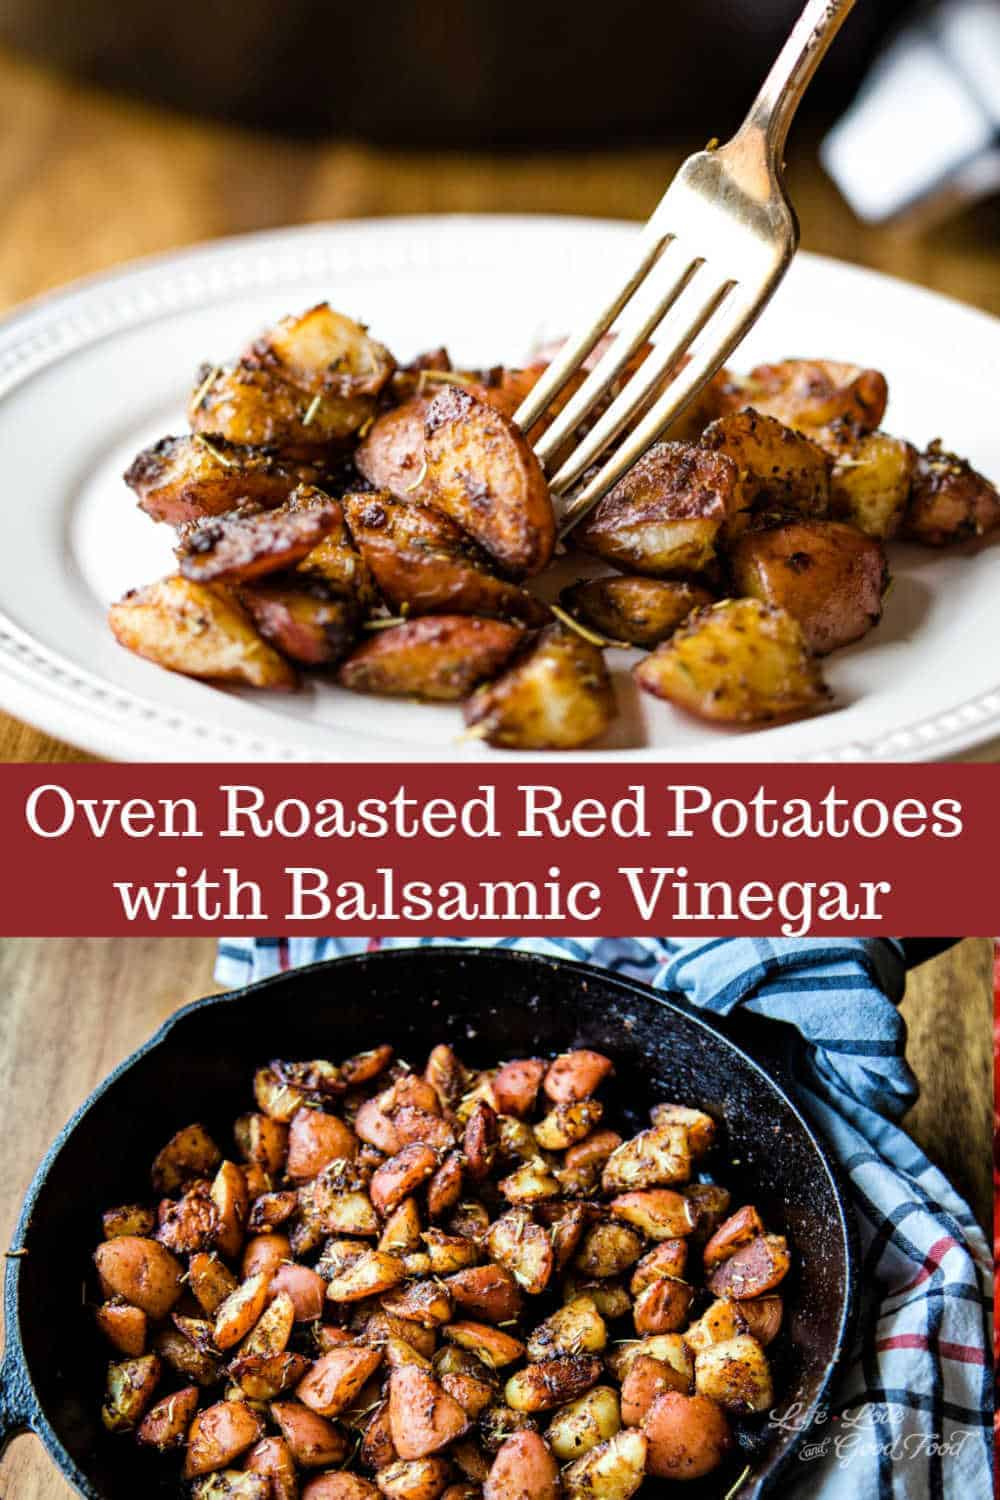 Seasoned with pantry spices like rosemary, thyme, and garlic, these Oven Roasted Red Potatoes are finished at the end with a drizzle of quality aged balsamic vinegar. With this easy recipe, parboil the potatoes first, then roast them for extra crispiness.